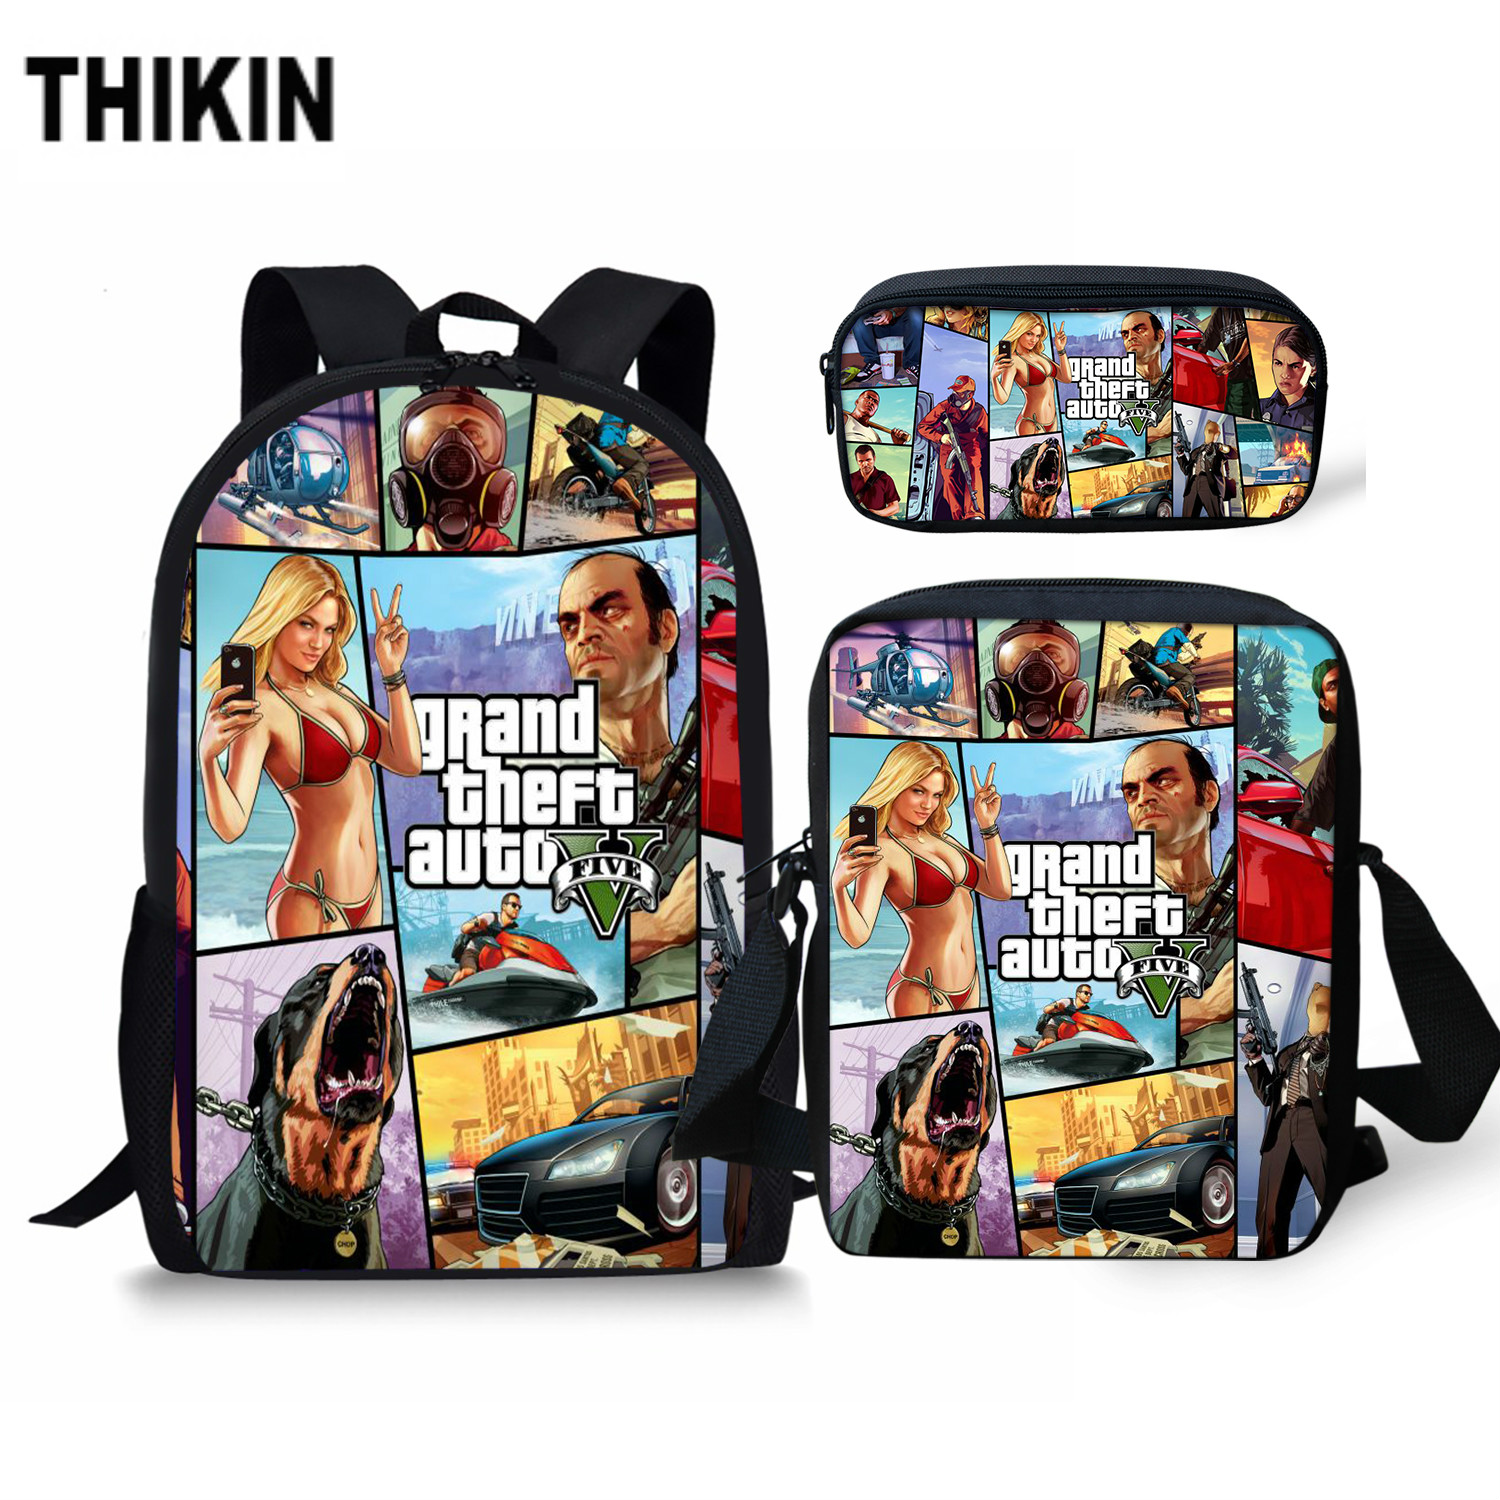 THIKIN 2019 Hot Games GTA 5 Print Schoolbag Personalized Pattern Book Bags Teenagers School Backpack Custom Child Mochila